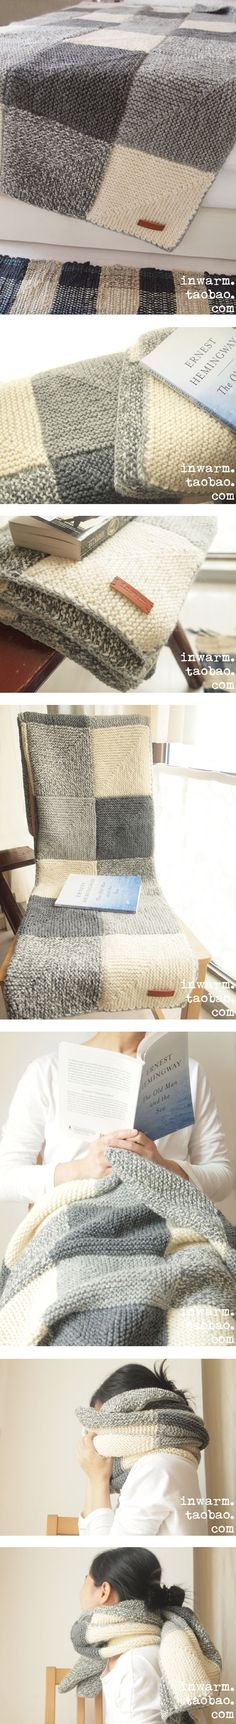 NEW for 2014 this crocheted blanket is an original design that is easy to complete. The entire blanket requires only three crochet stitches - chain stitch, sing Knitted Afghans, Crochet Blanket Patterns, Knitted Blankets, Knitting Patterns, Knit Or Crochet, Crochet Crafts, Hand Crochet, Simple Crochet, Crochet Doilies